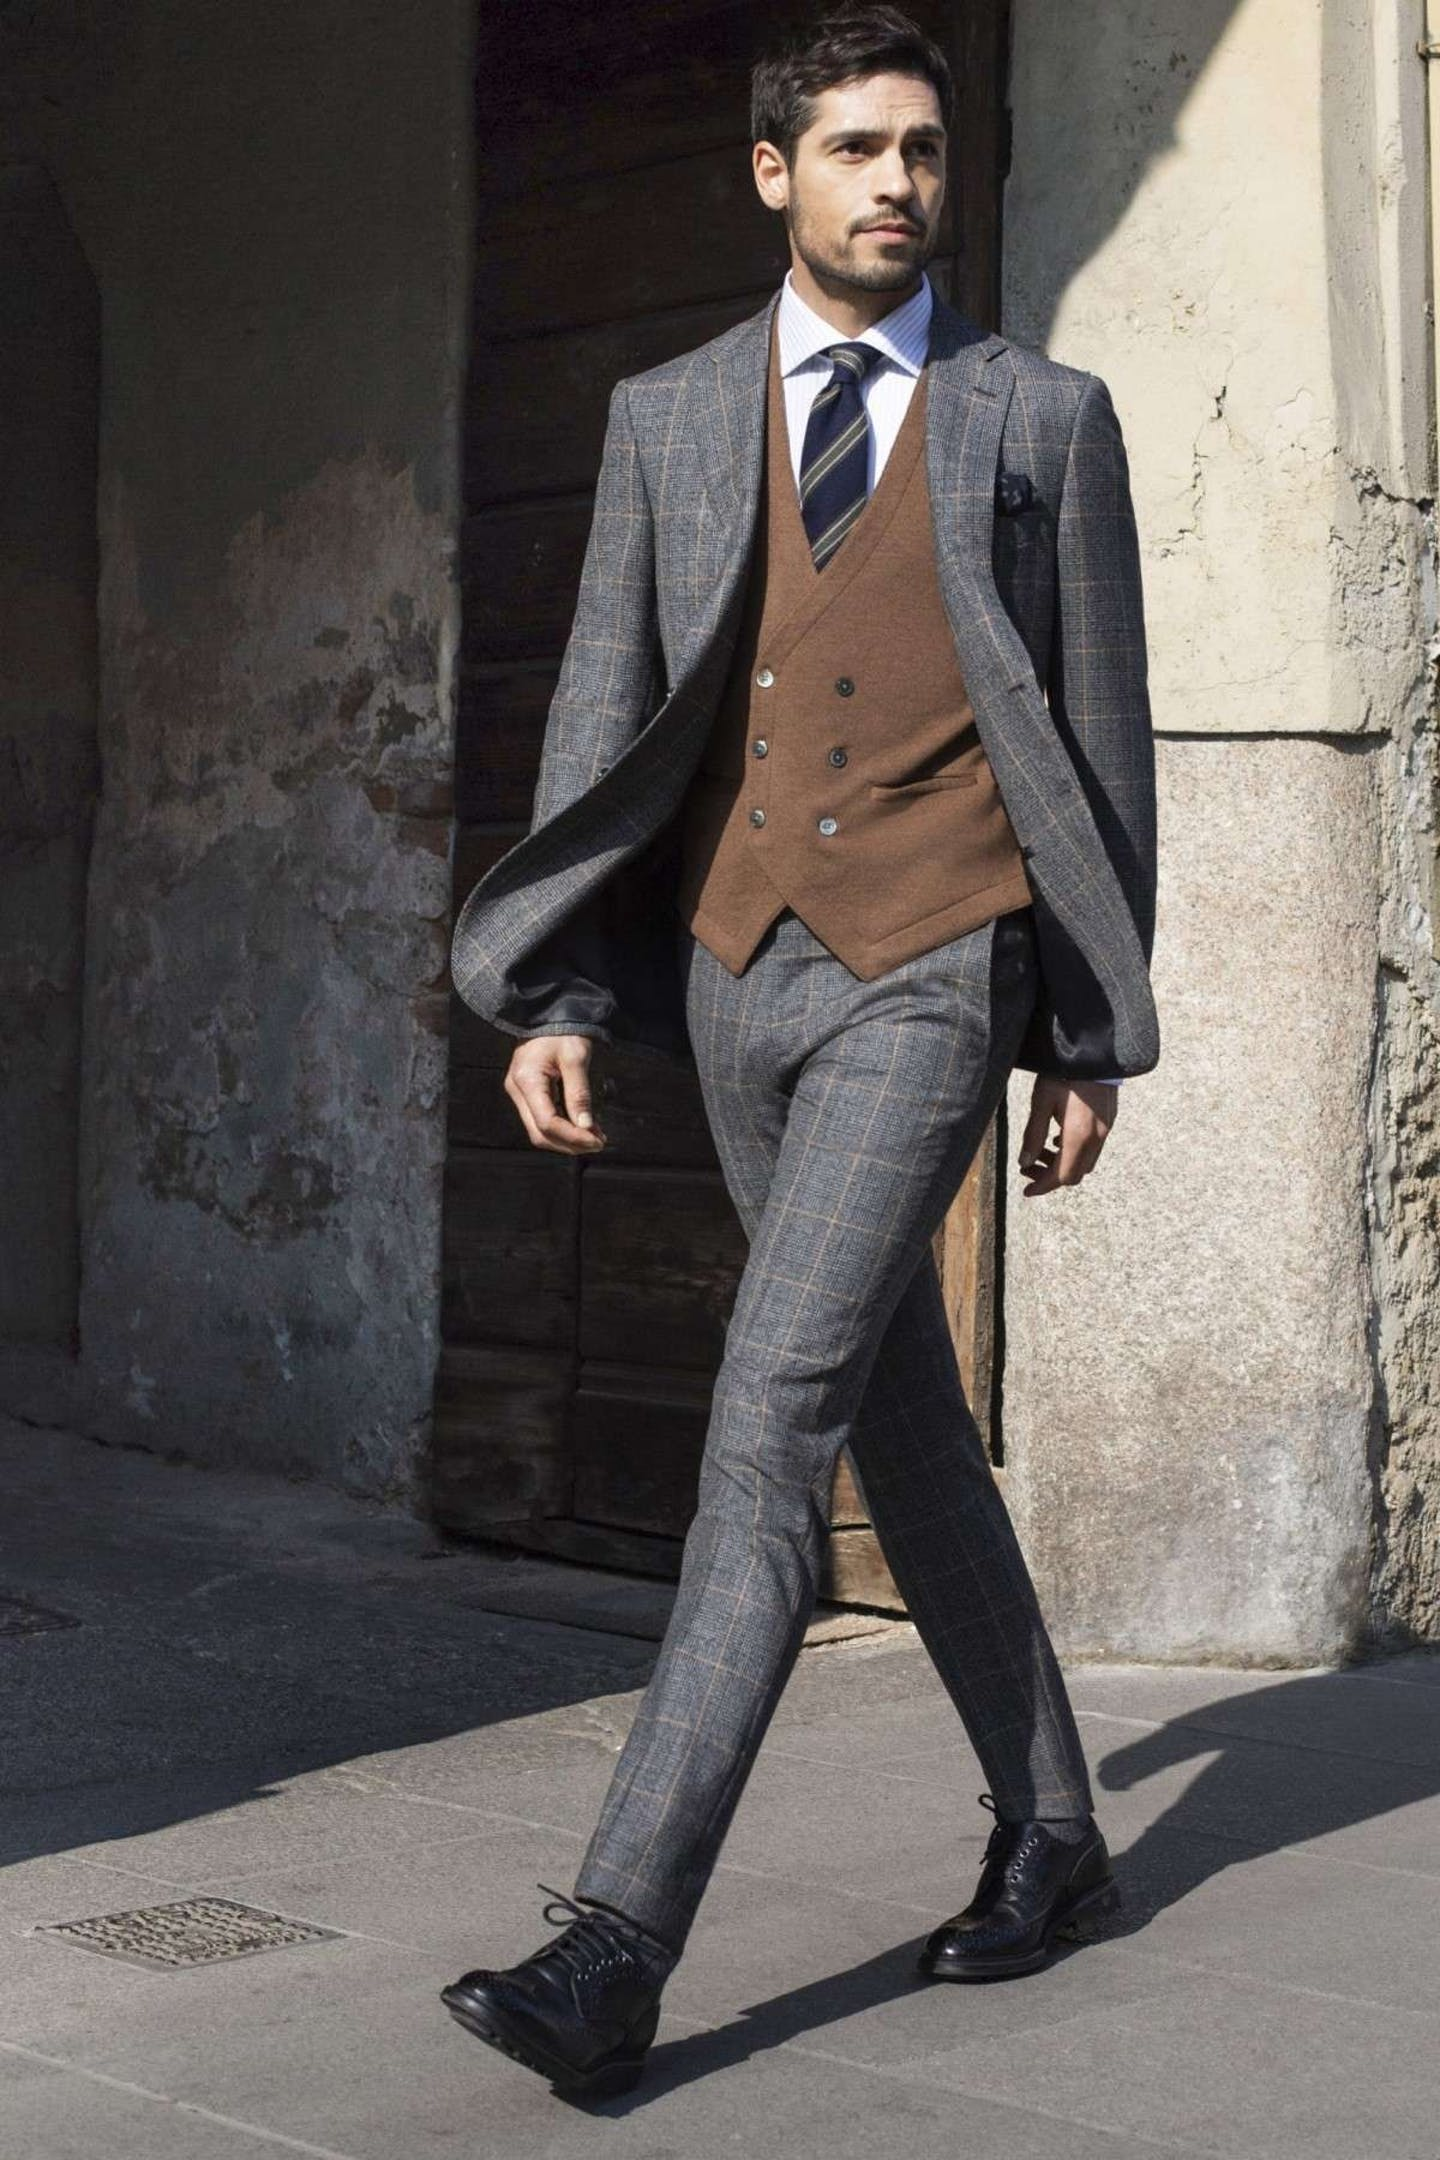 Prince of Wales fabric: How to wear glen plaid boggi milano glen plaid suit